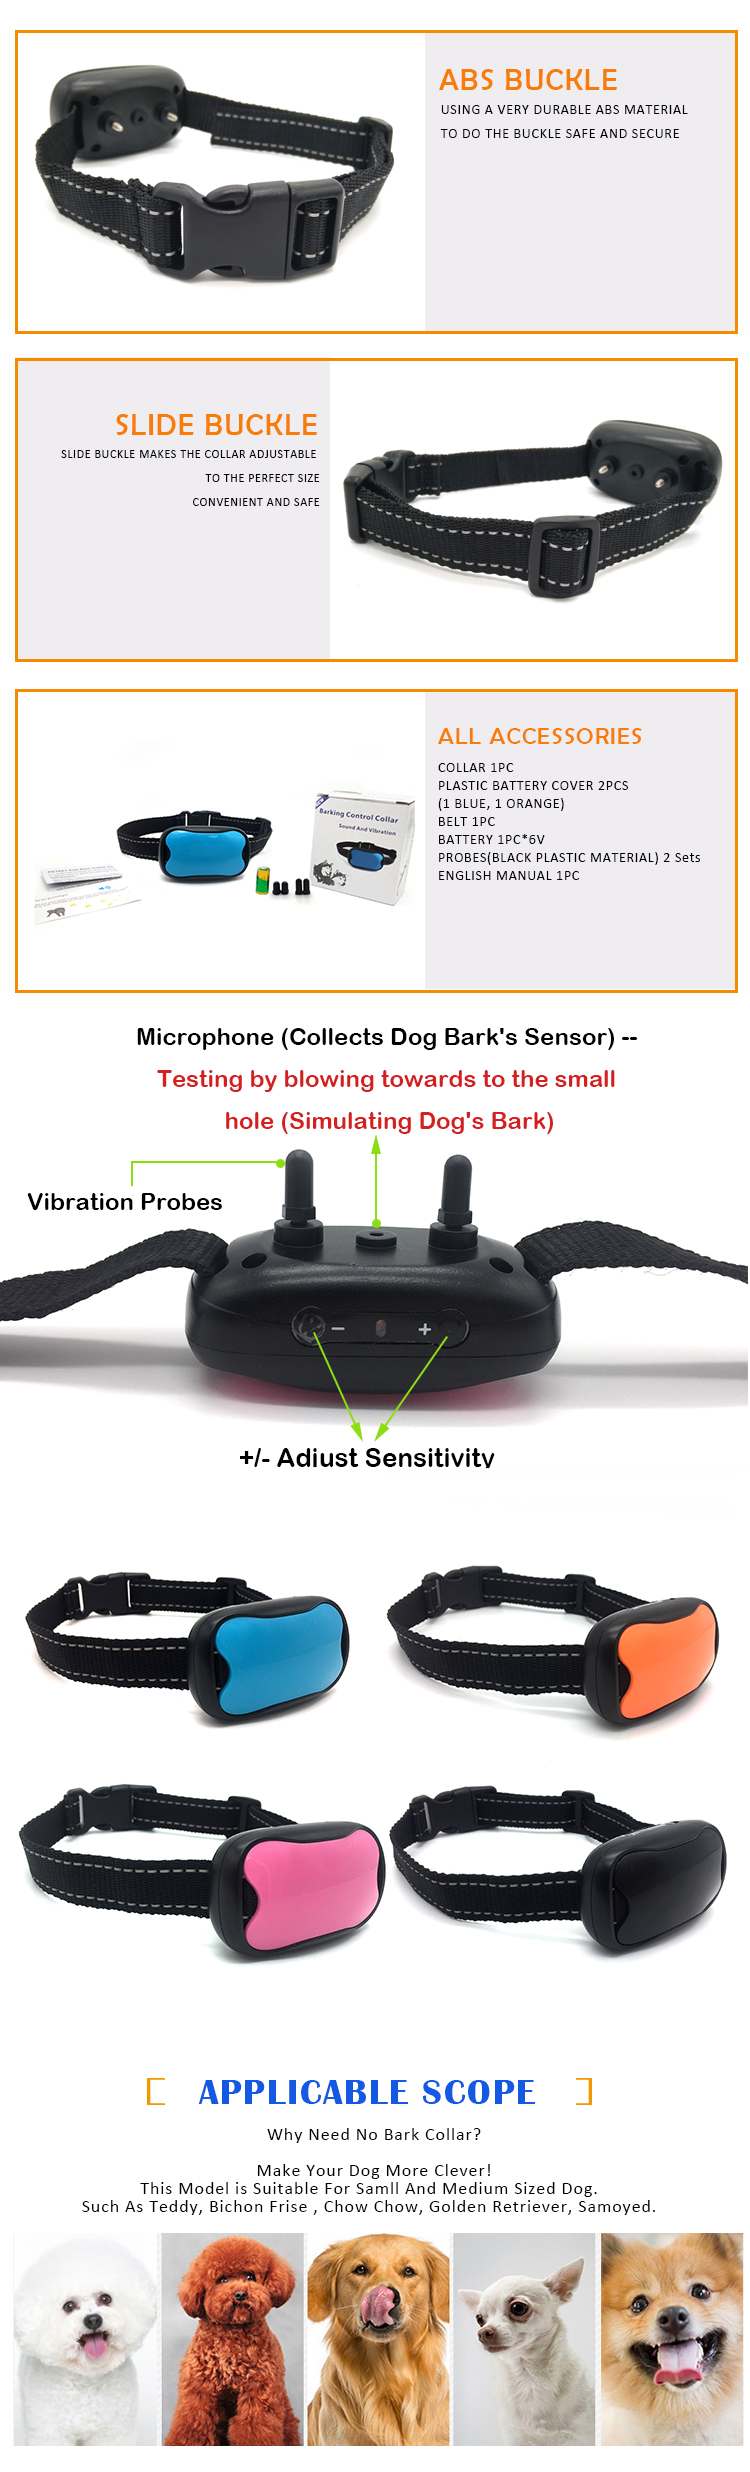 Small Pet Dog Bark Stop Trainer Used Dog Training Vibration Anti Bark Collar, No Shock Control No Bark Dog Collar